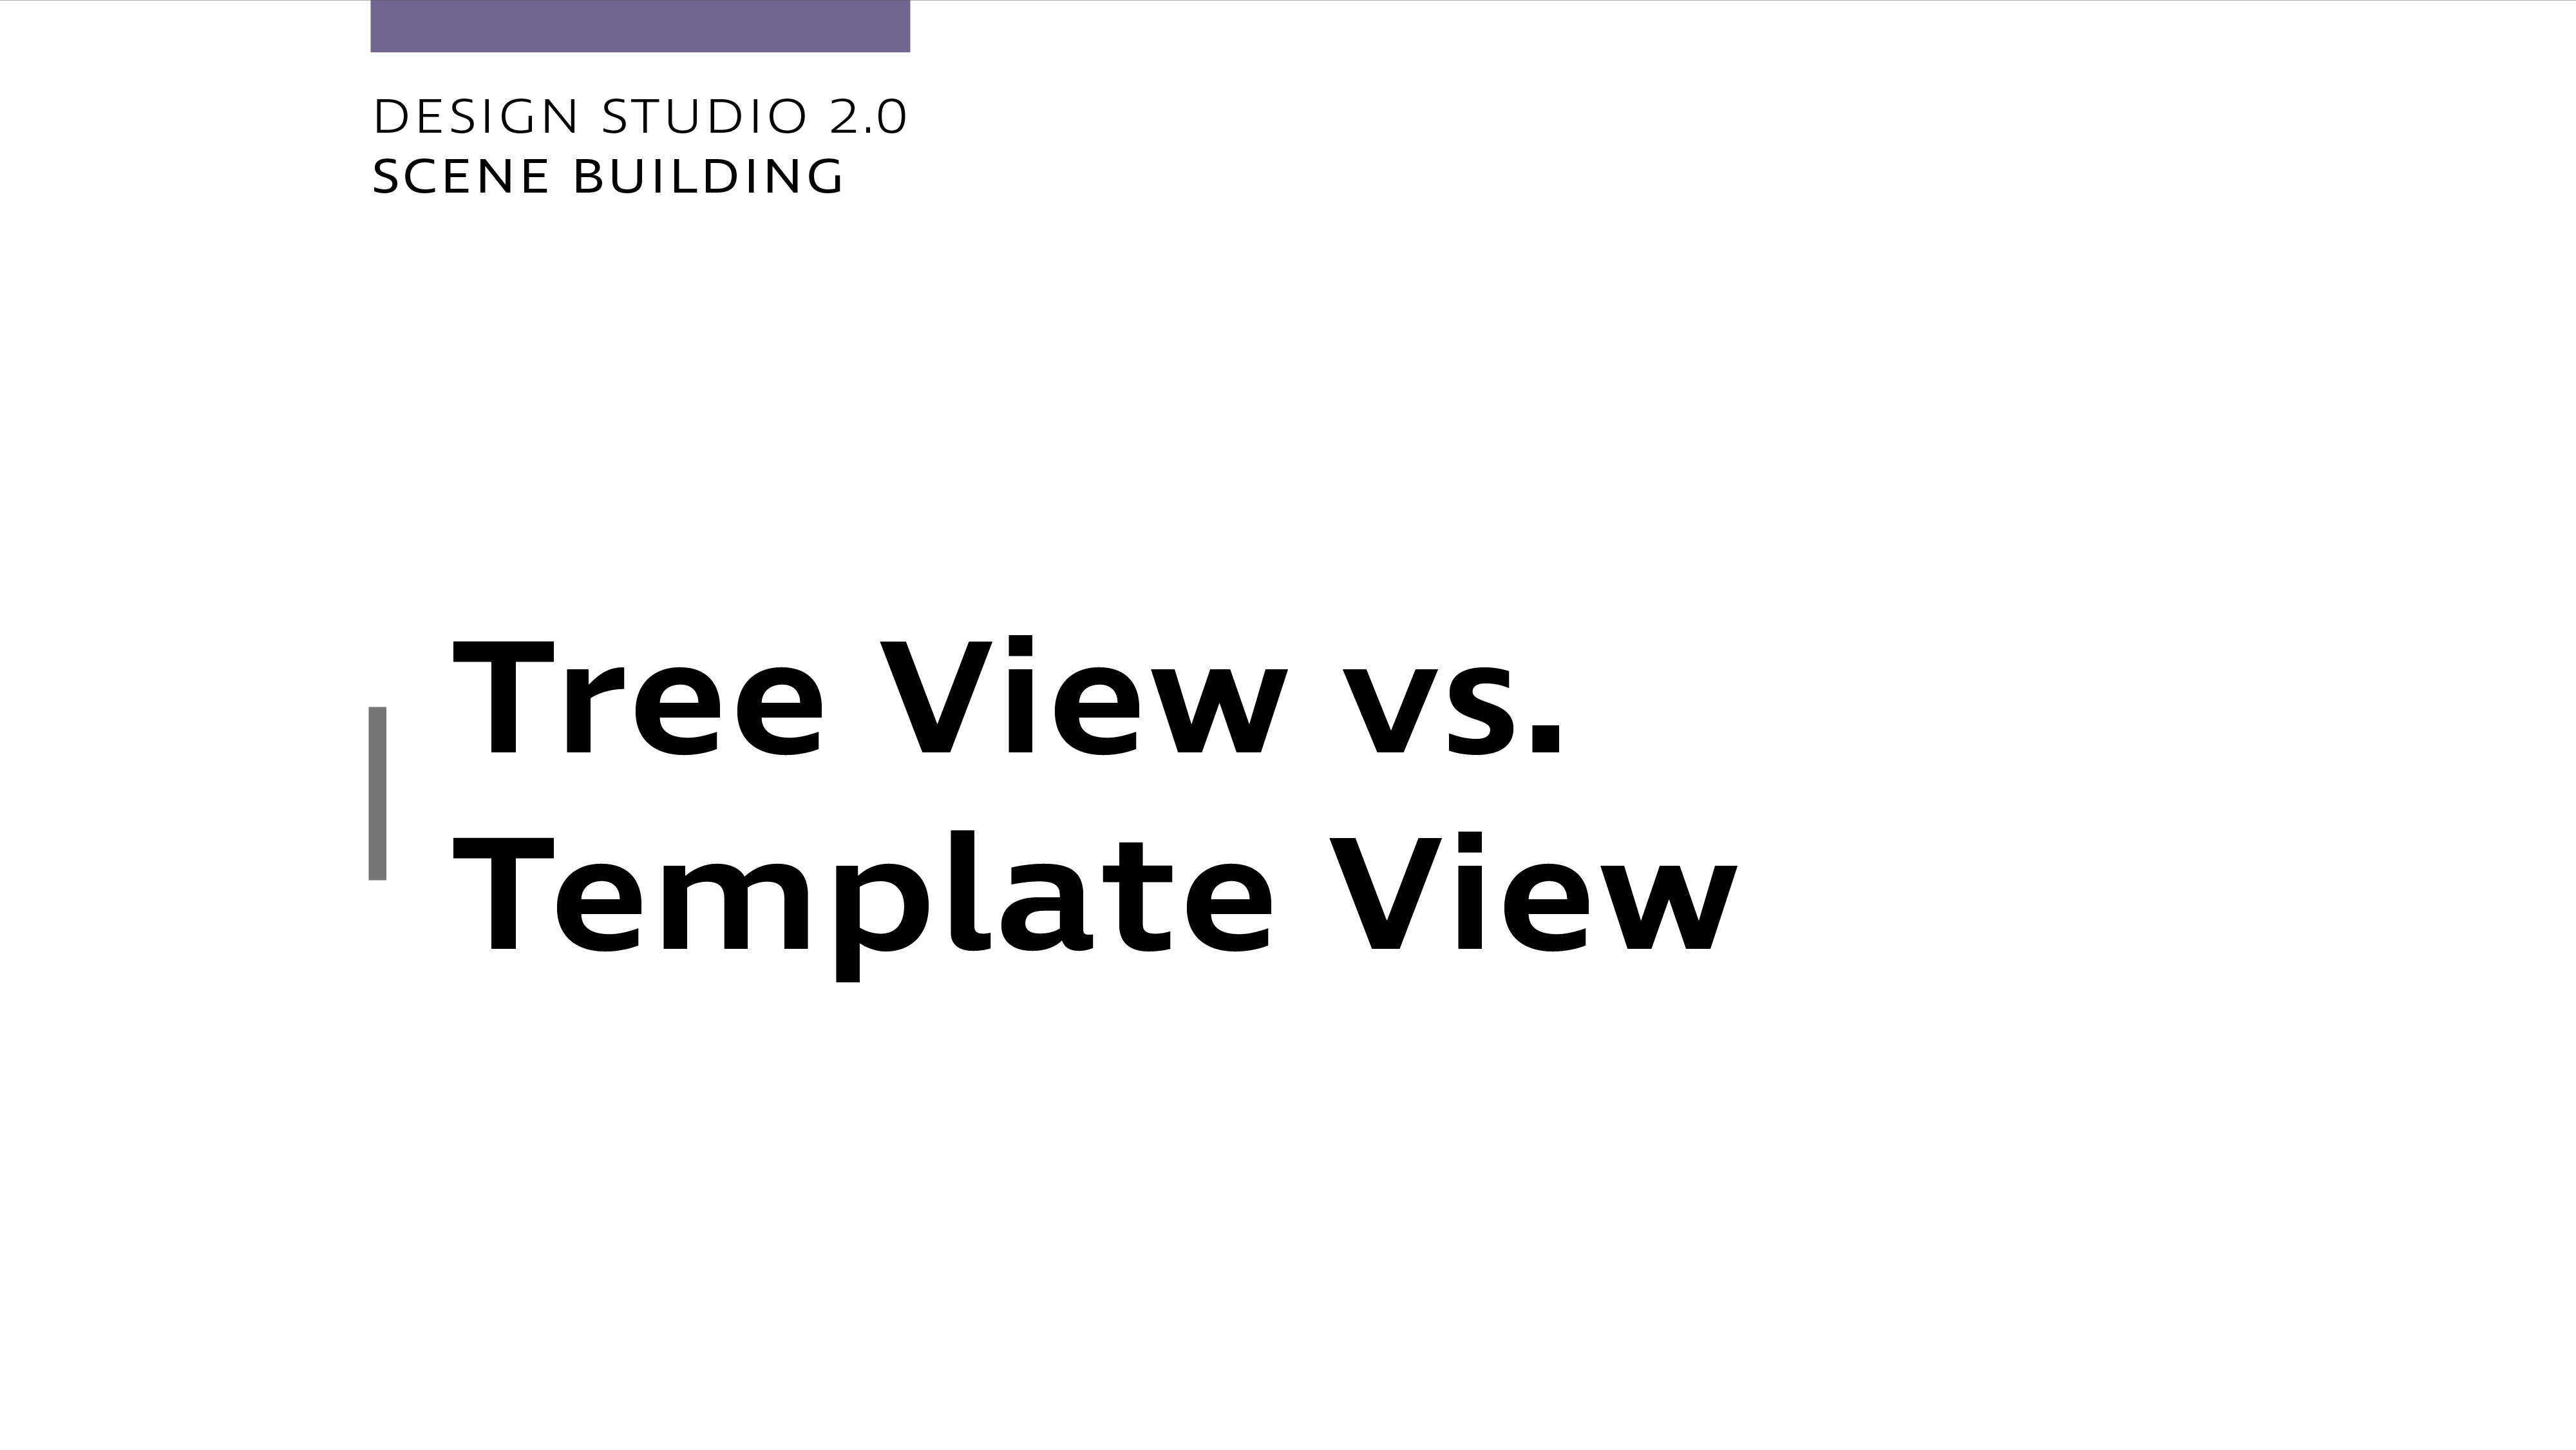 Design Studio 2.0 - Tree View vs. Template View